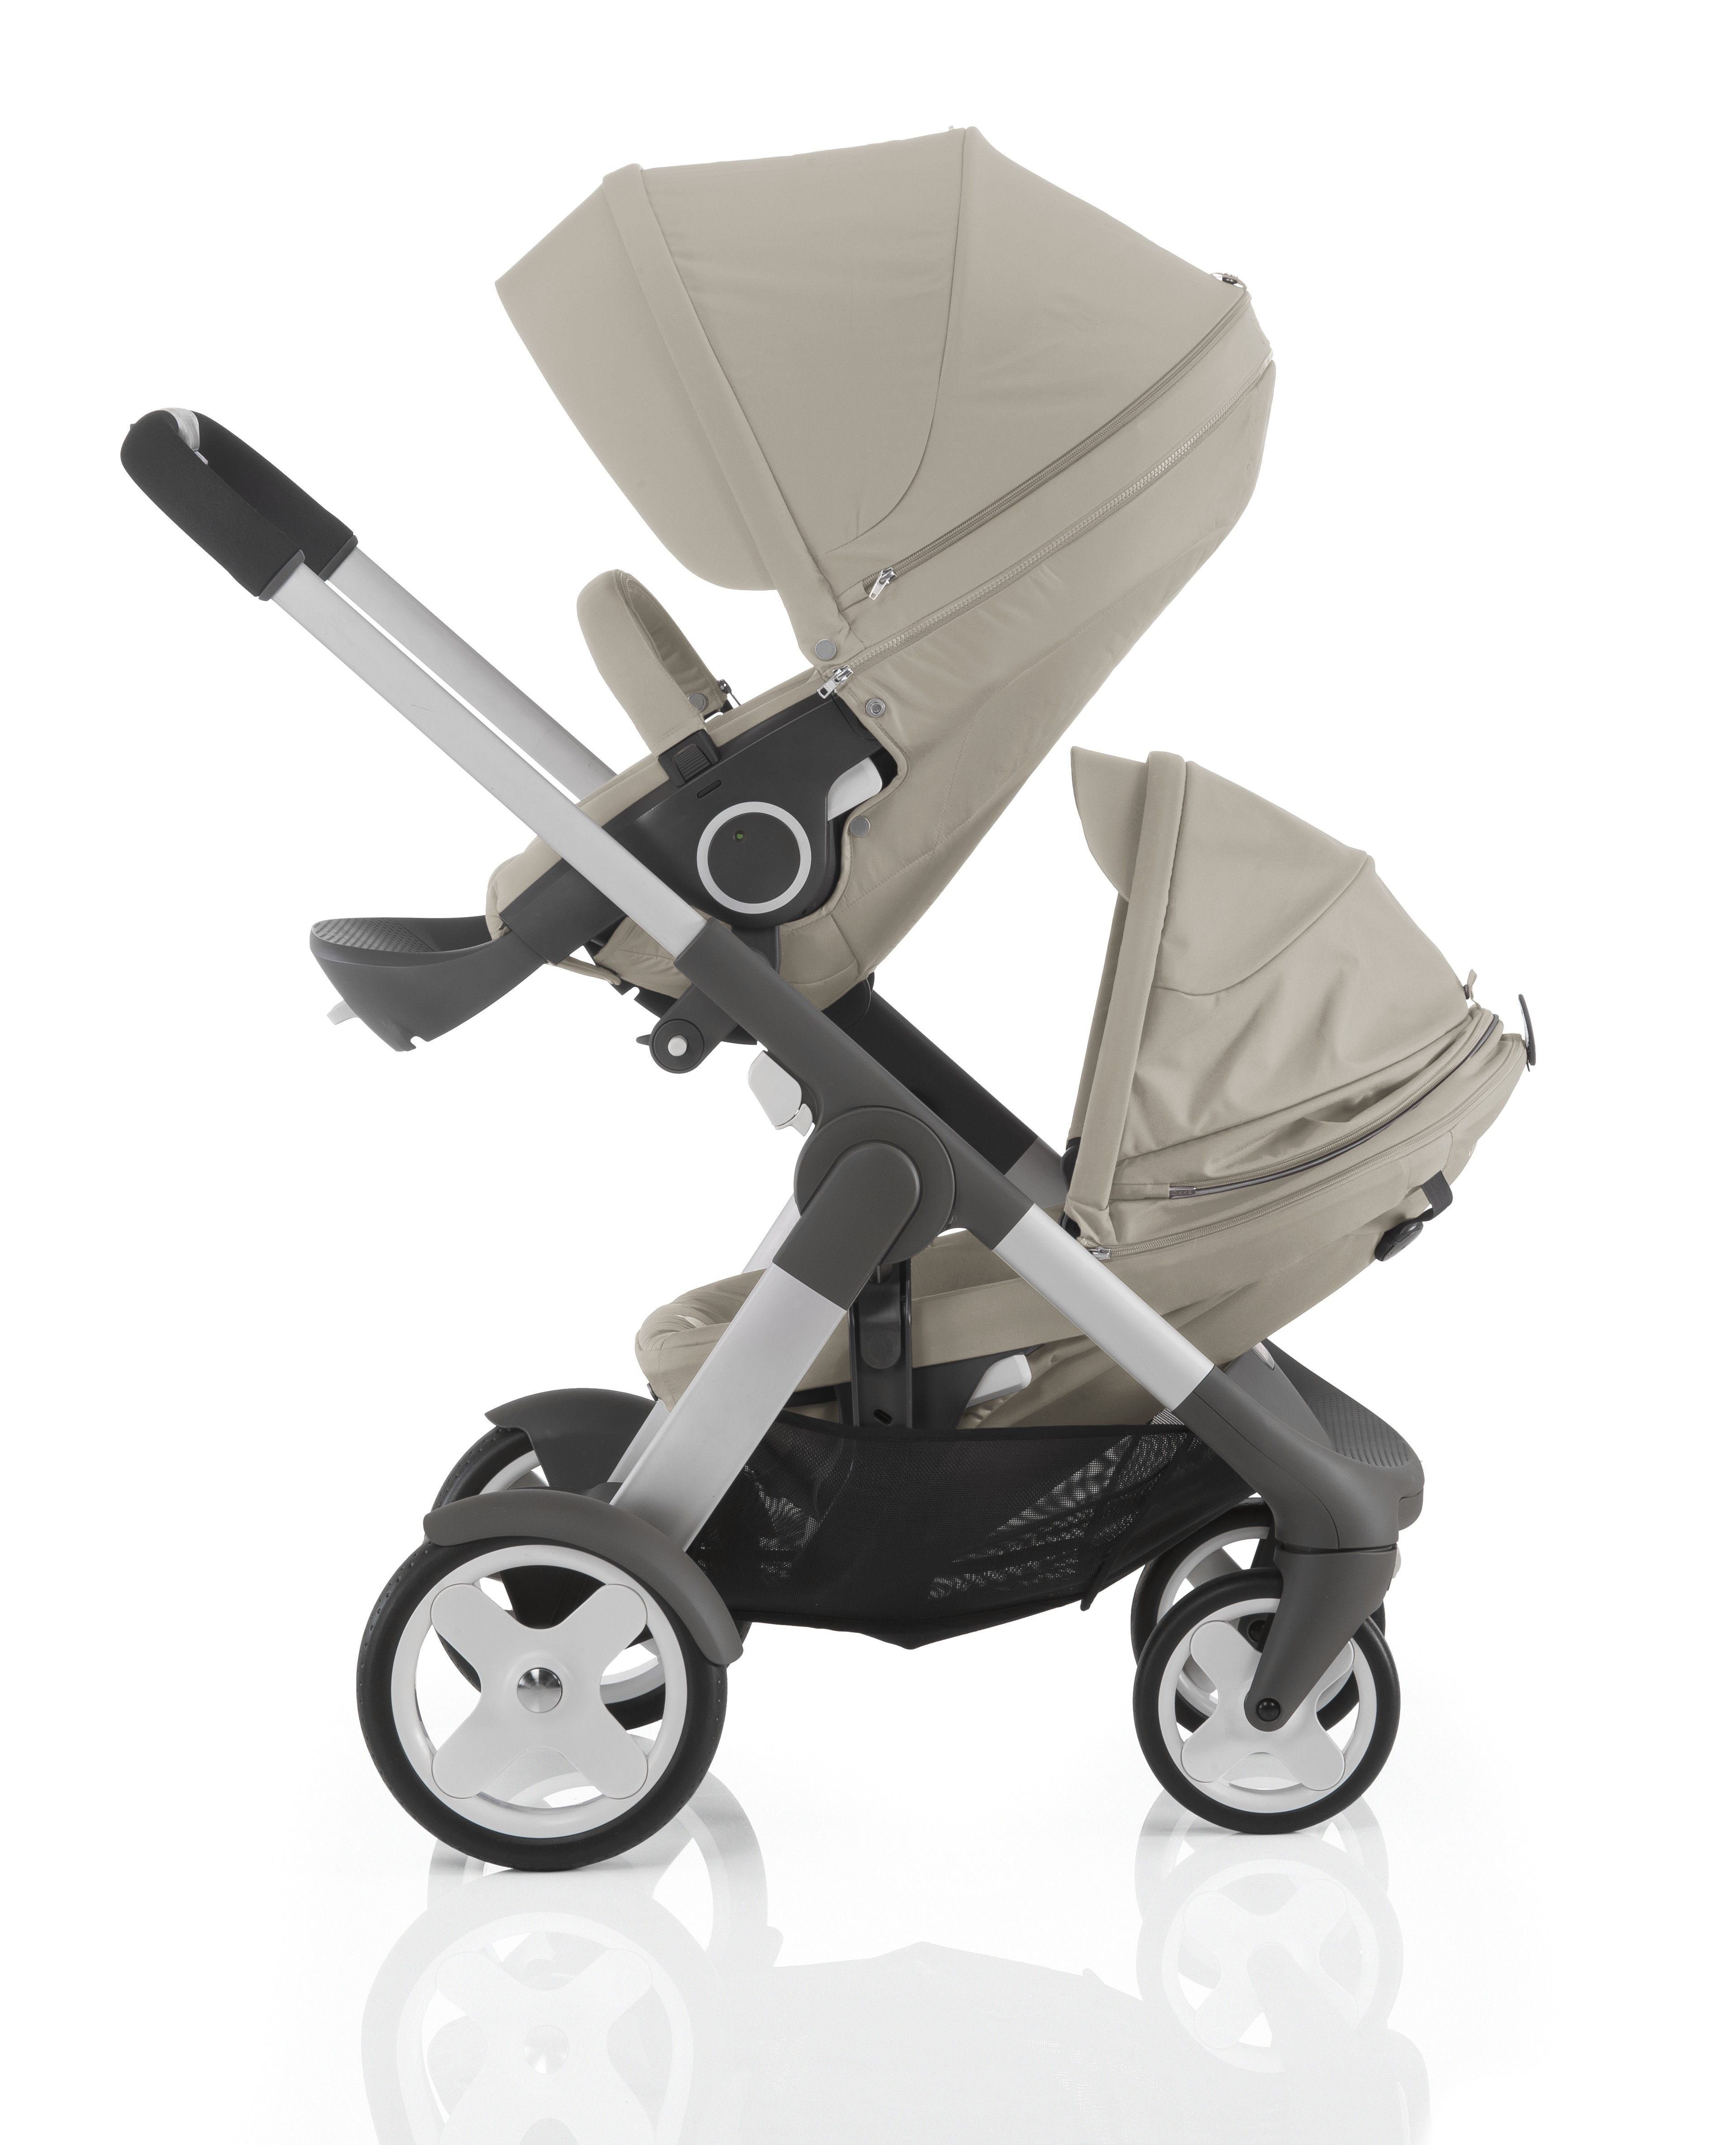 Double the fun with Stokke's sibling solution with the